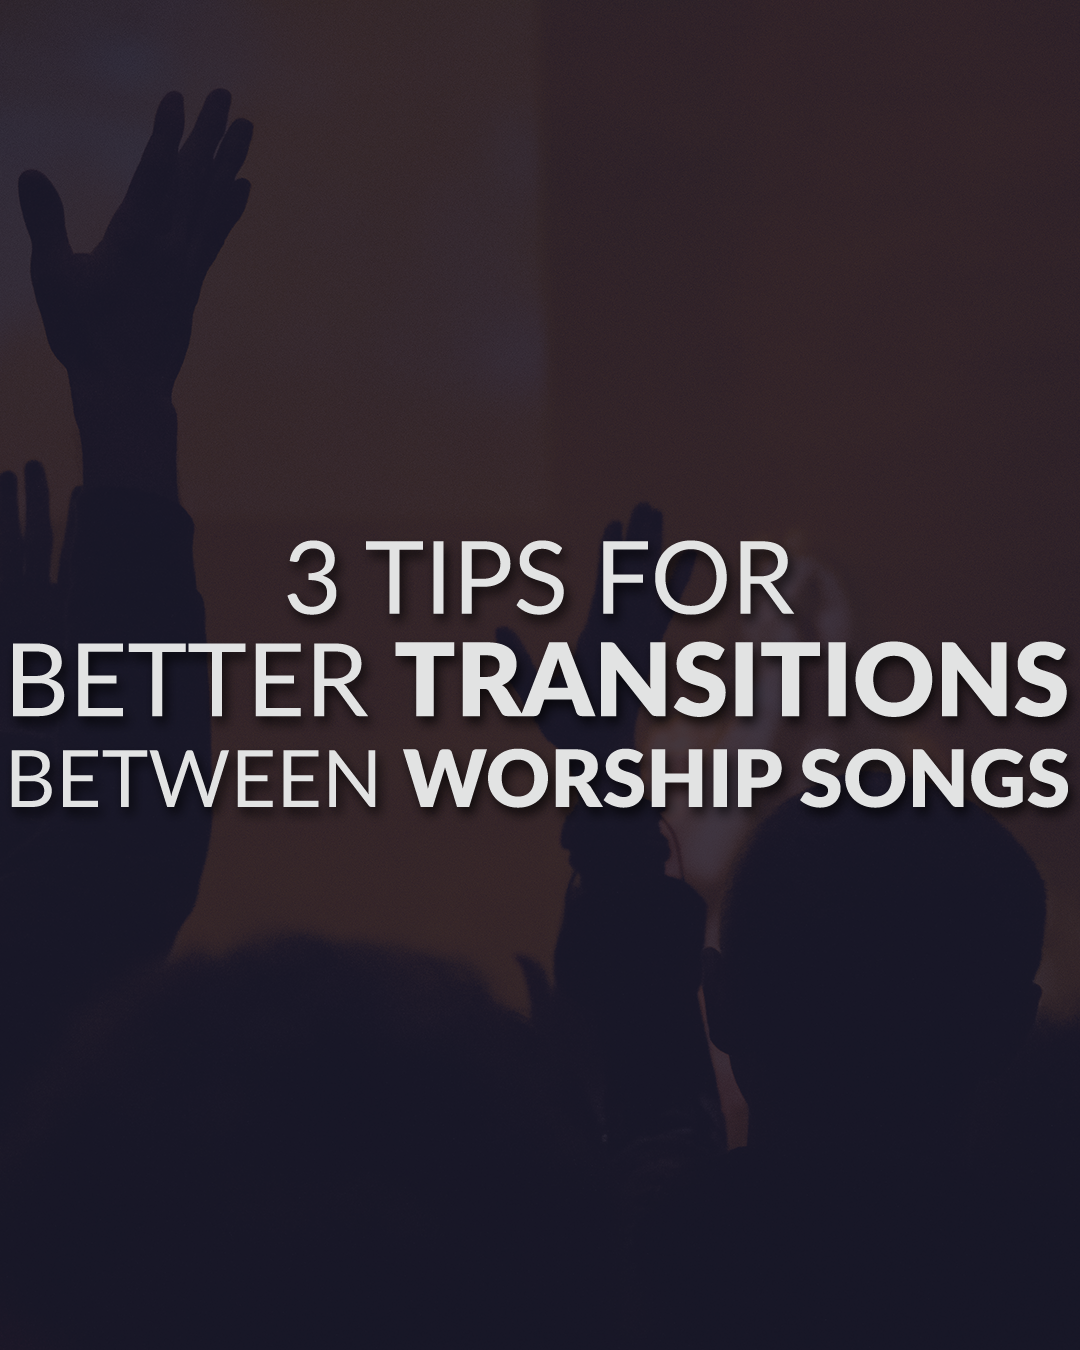 3 Tips For Better Transitions Between Worship Songs